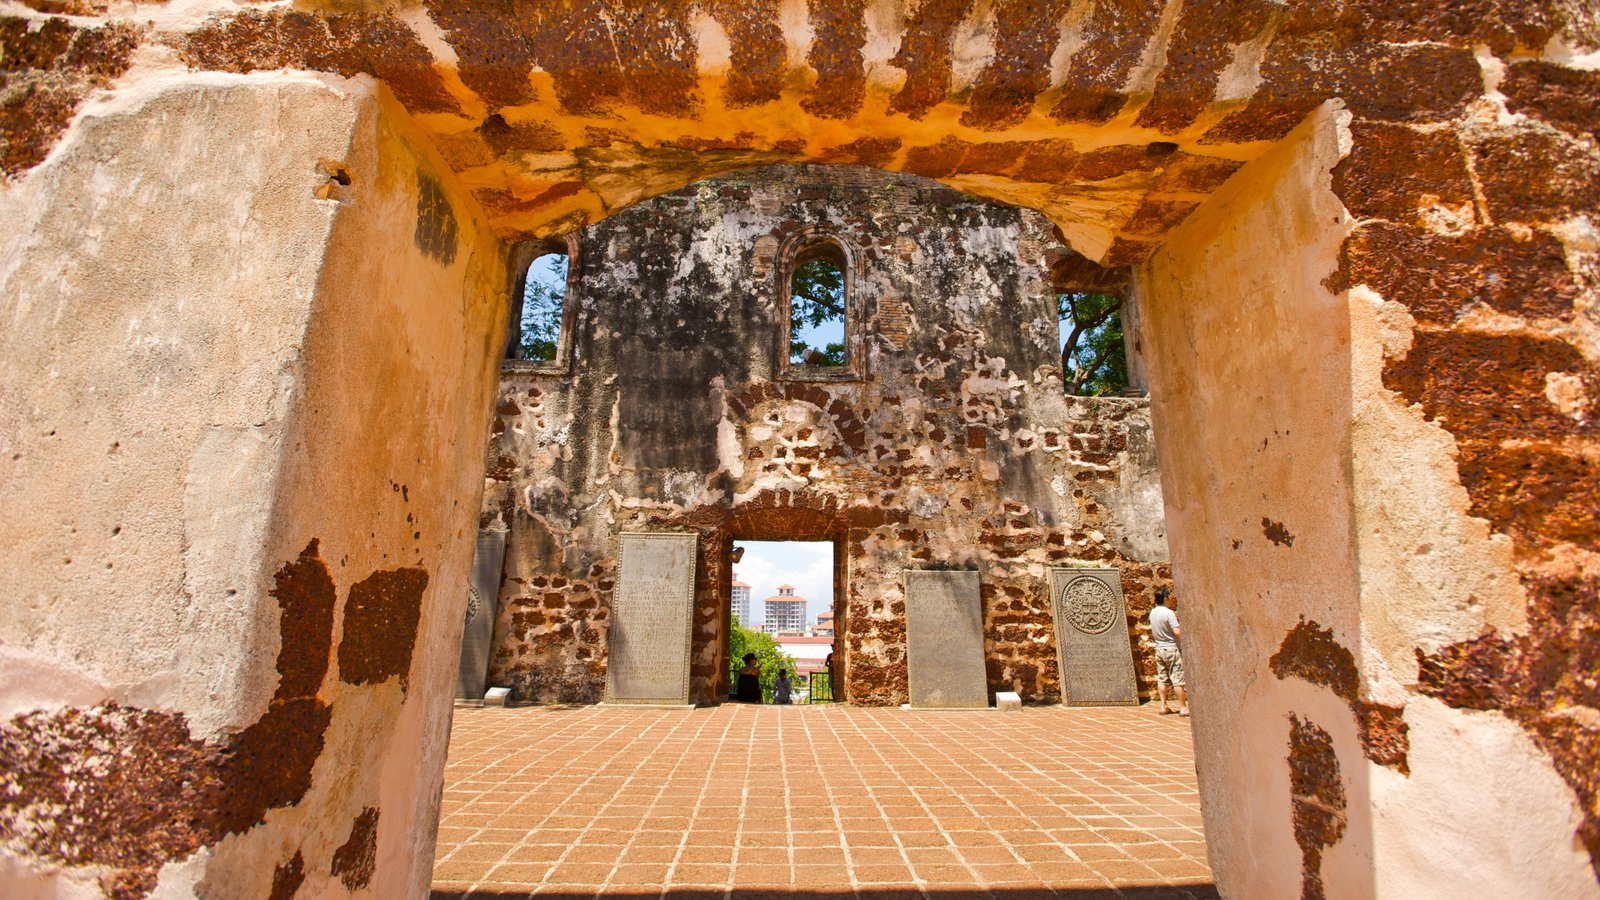 trip to malacca essay Top things to do in melaka, central melaka district: see tripadvisor's 26,052 traveller reviews and photos of 147 things to do when in melaka.